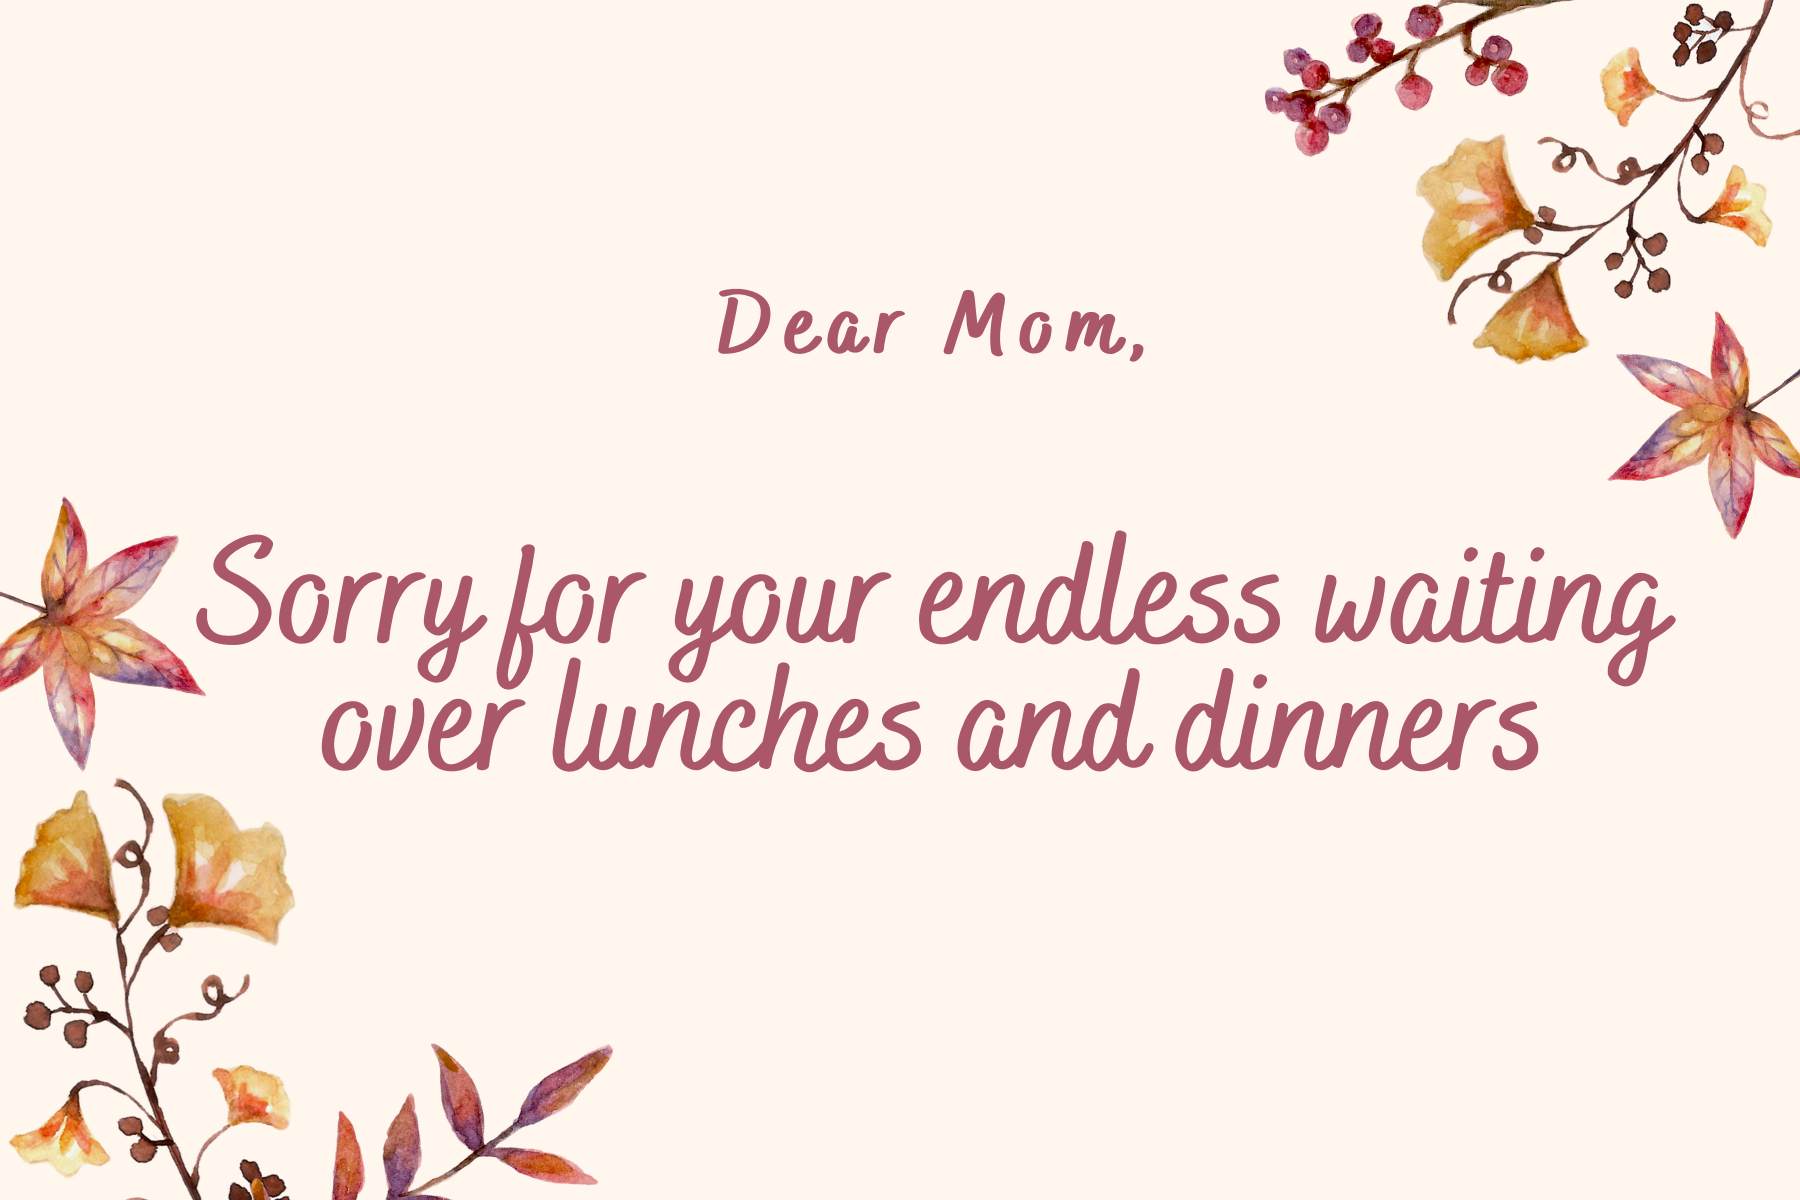 Sorry for your endless waiting over lunches and dinners